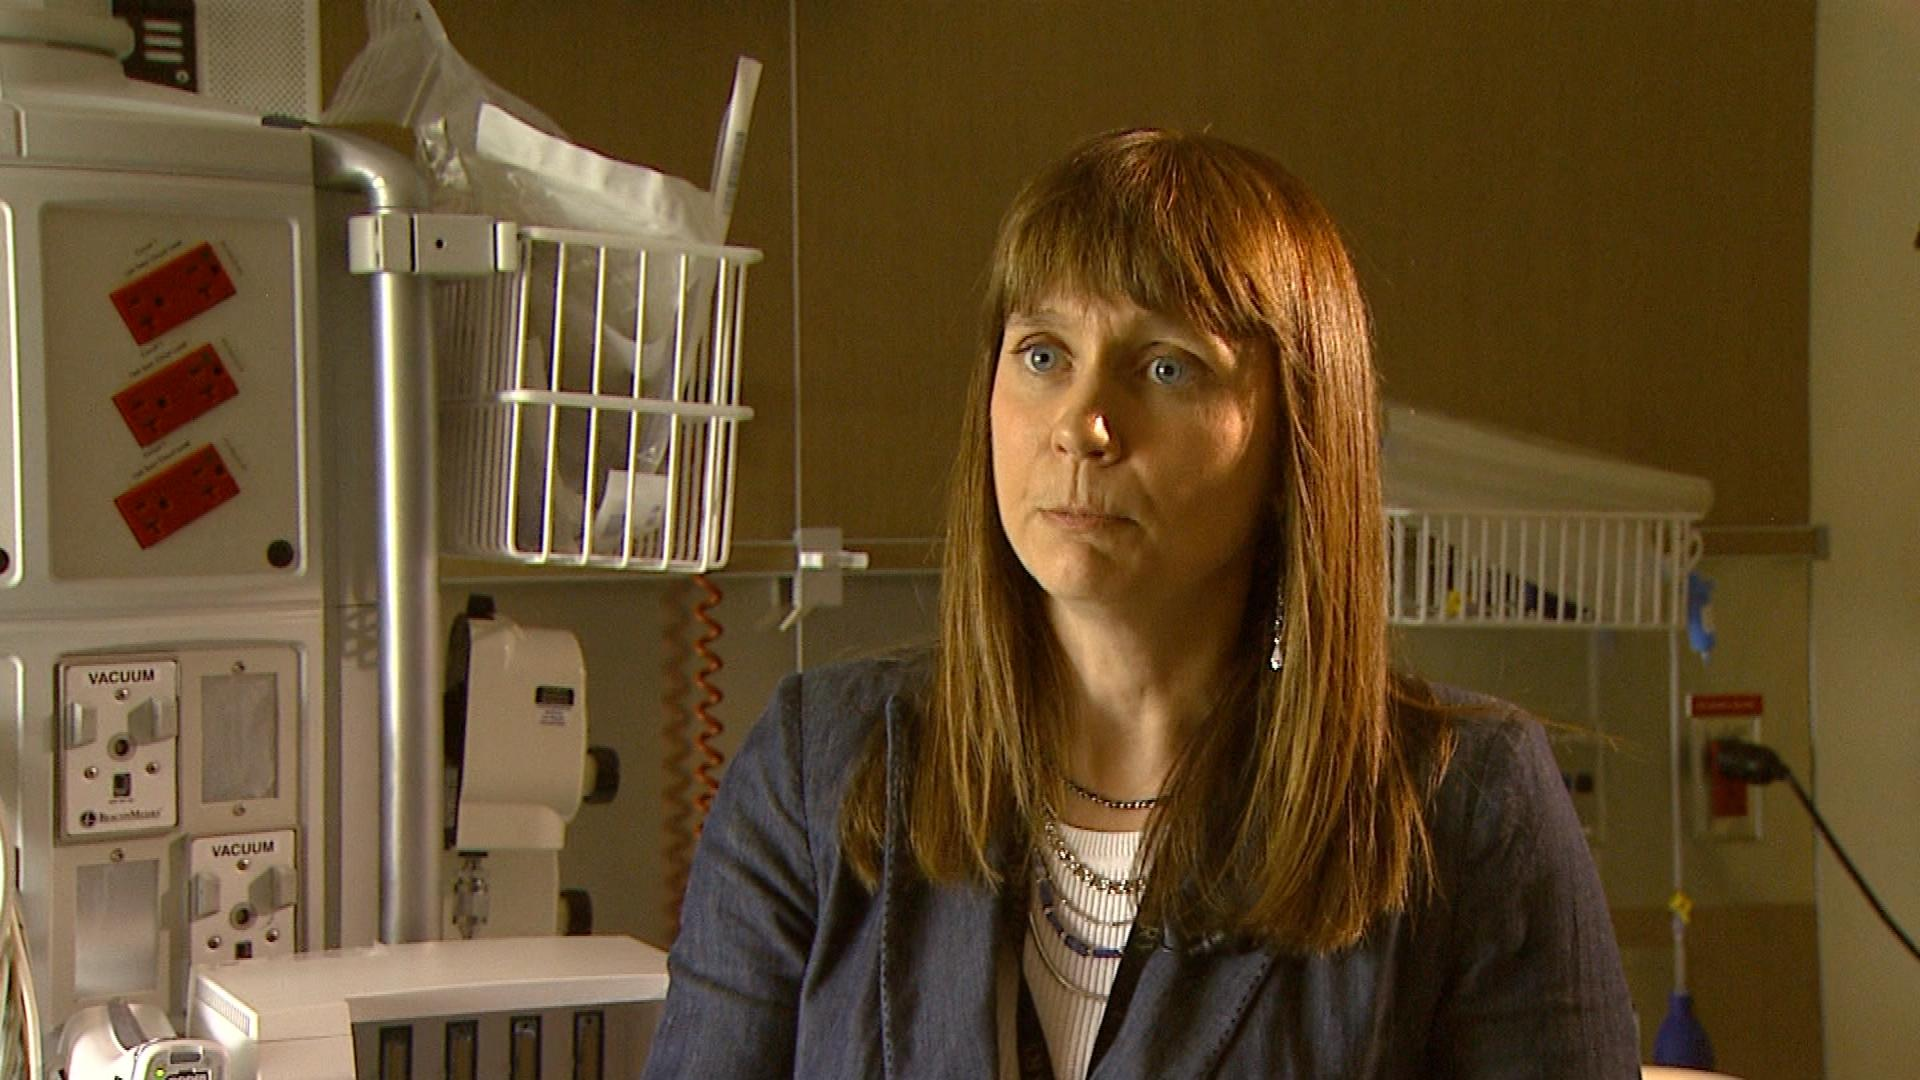 Meredith Mealer, PhD and Assistant Professor in the University of Colorado School of Medicine Department of Physical Medicine and Rehabilitation (credit: CBS)